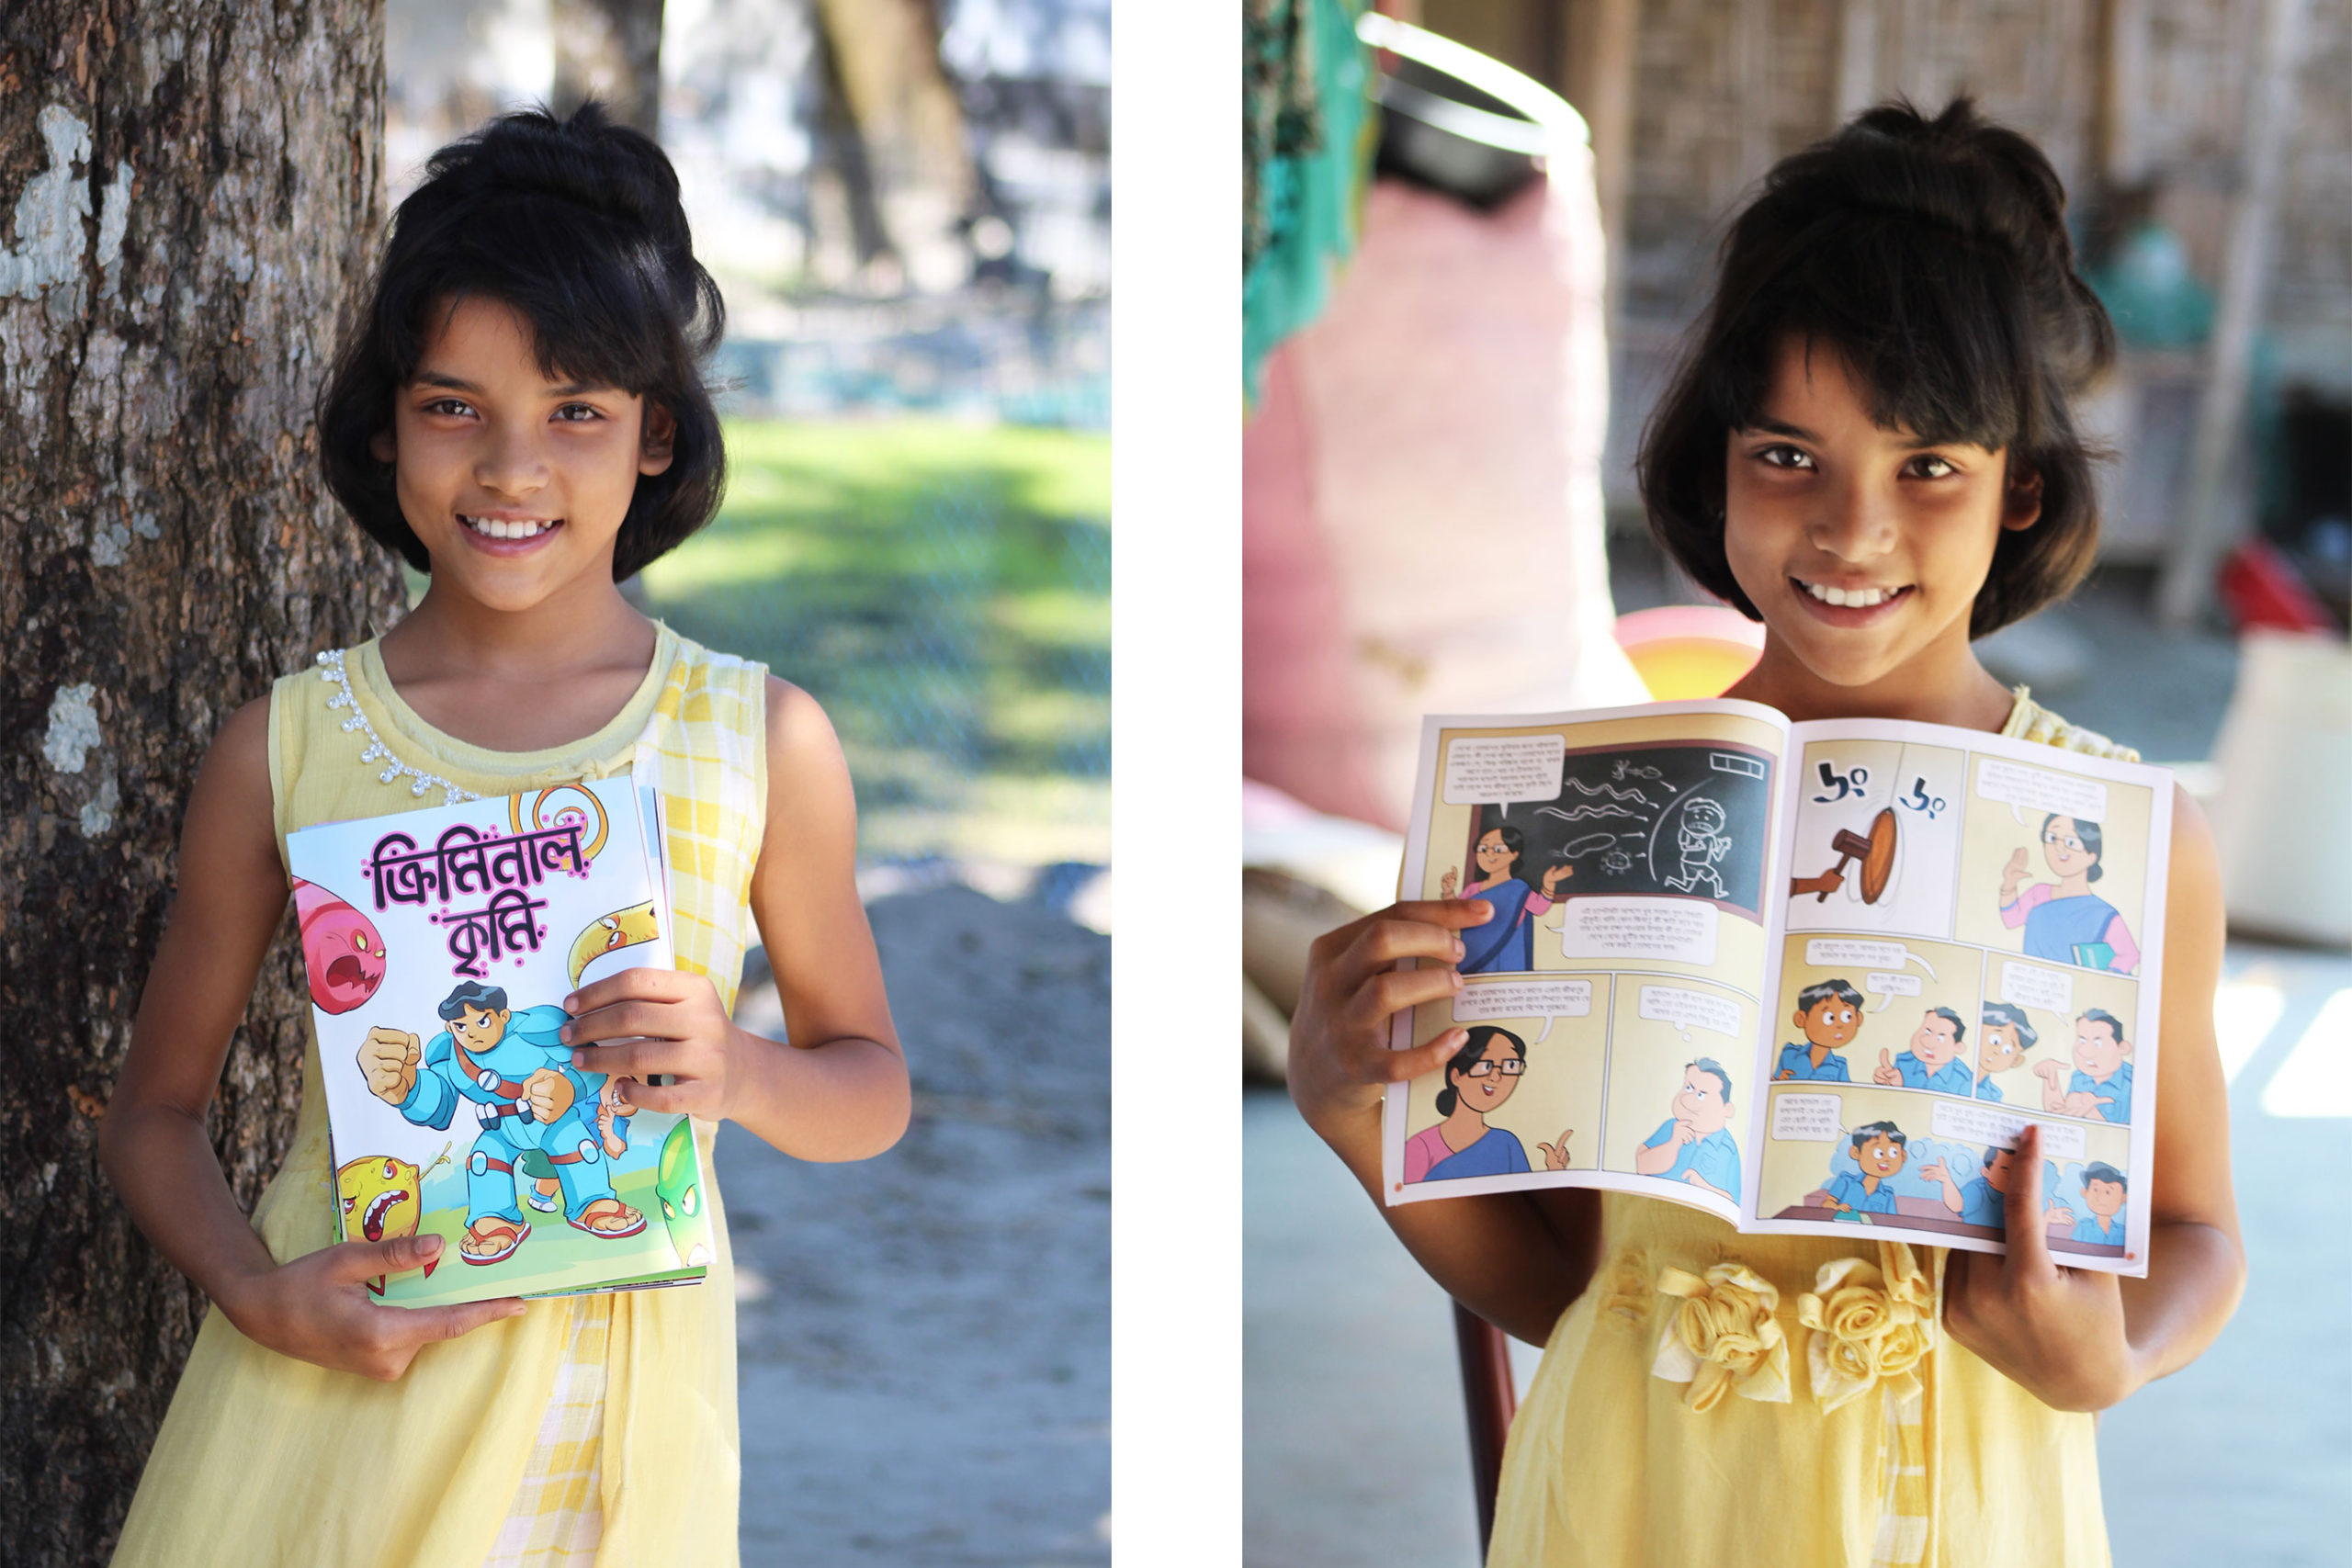 Tanisha holds a comic book with messages on deworming